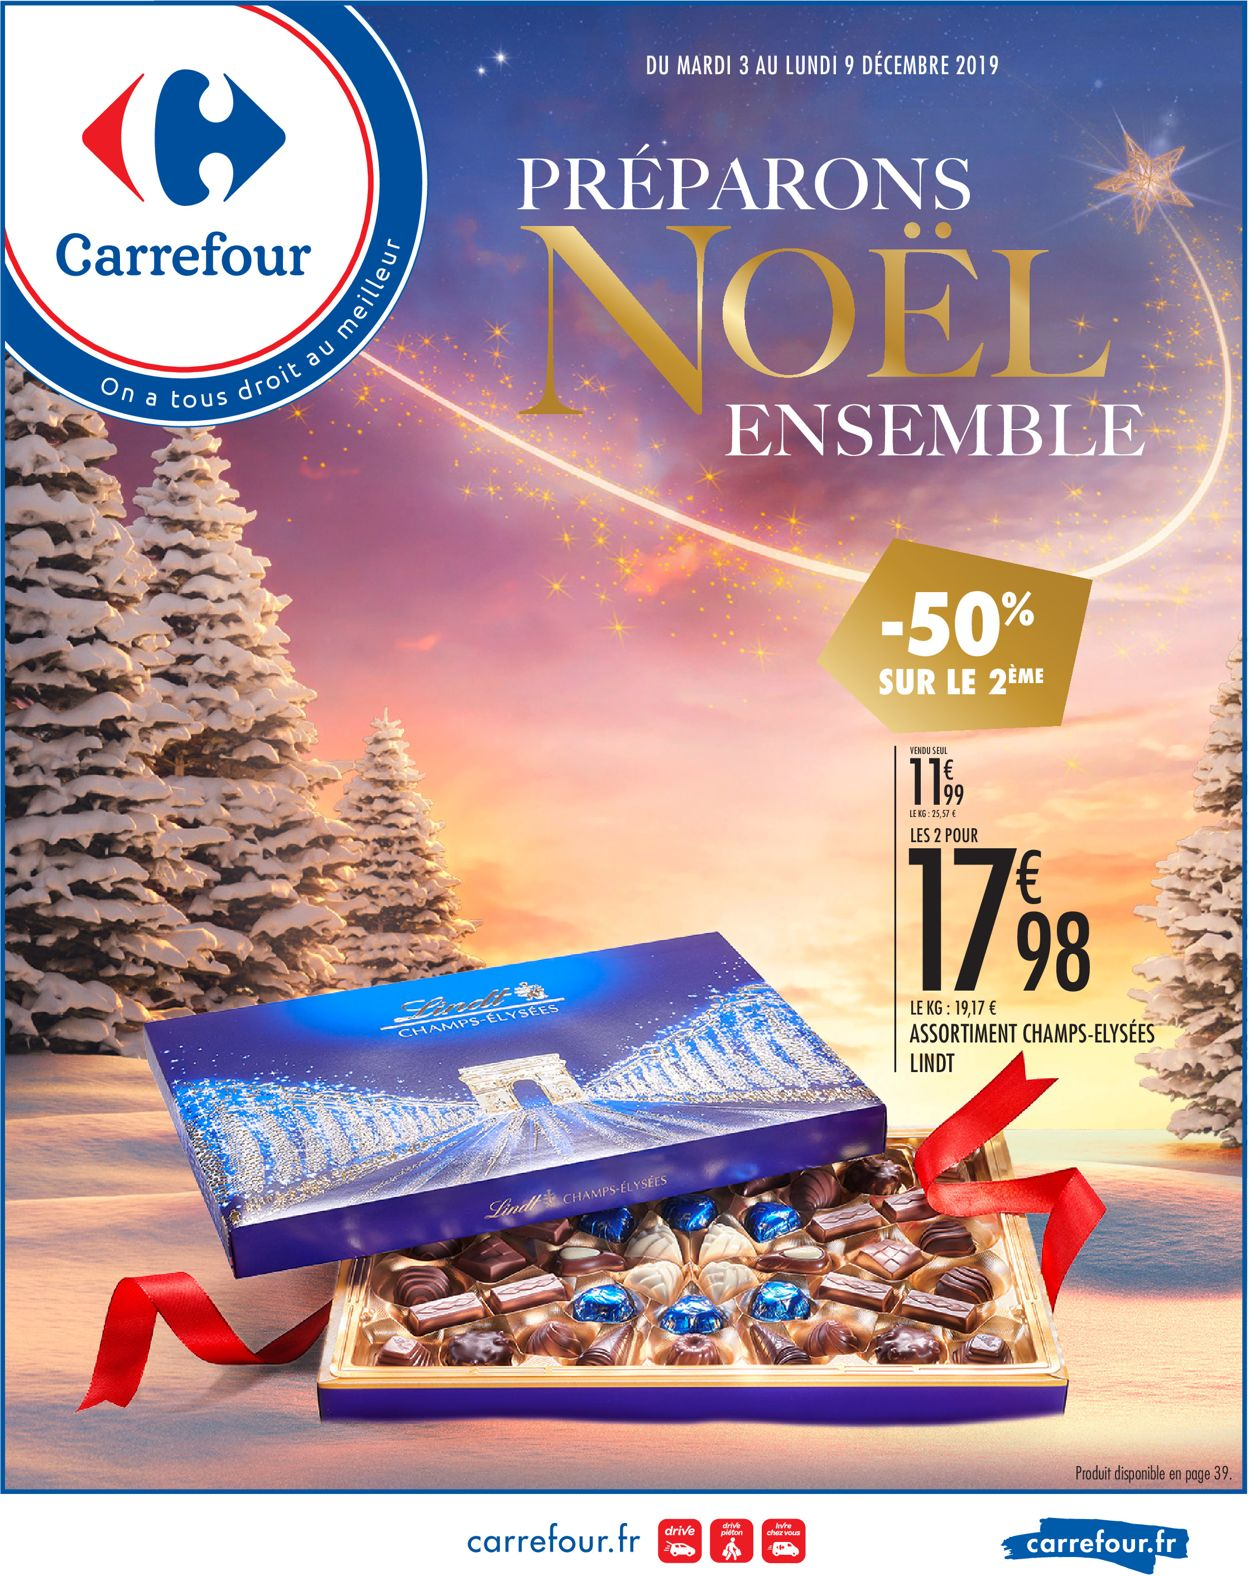 Carrefour - catalogue de Noël 2019 Catalogue - 03.12-09.12.2019